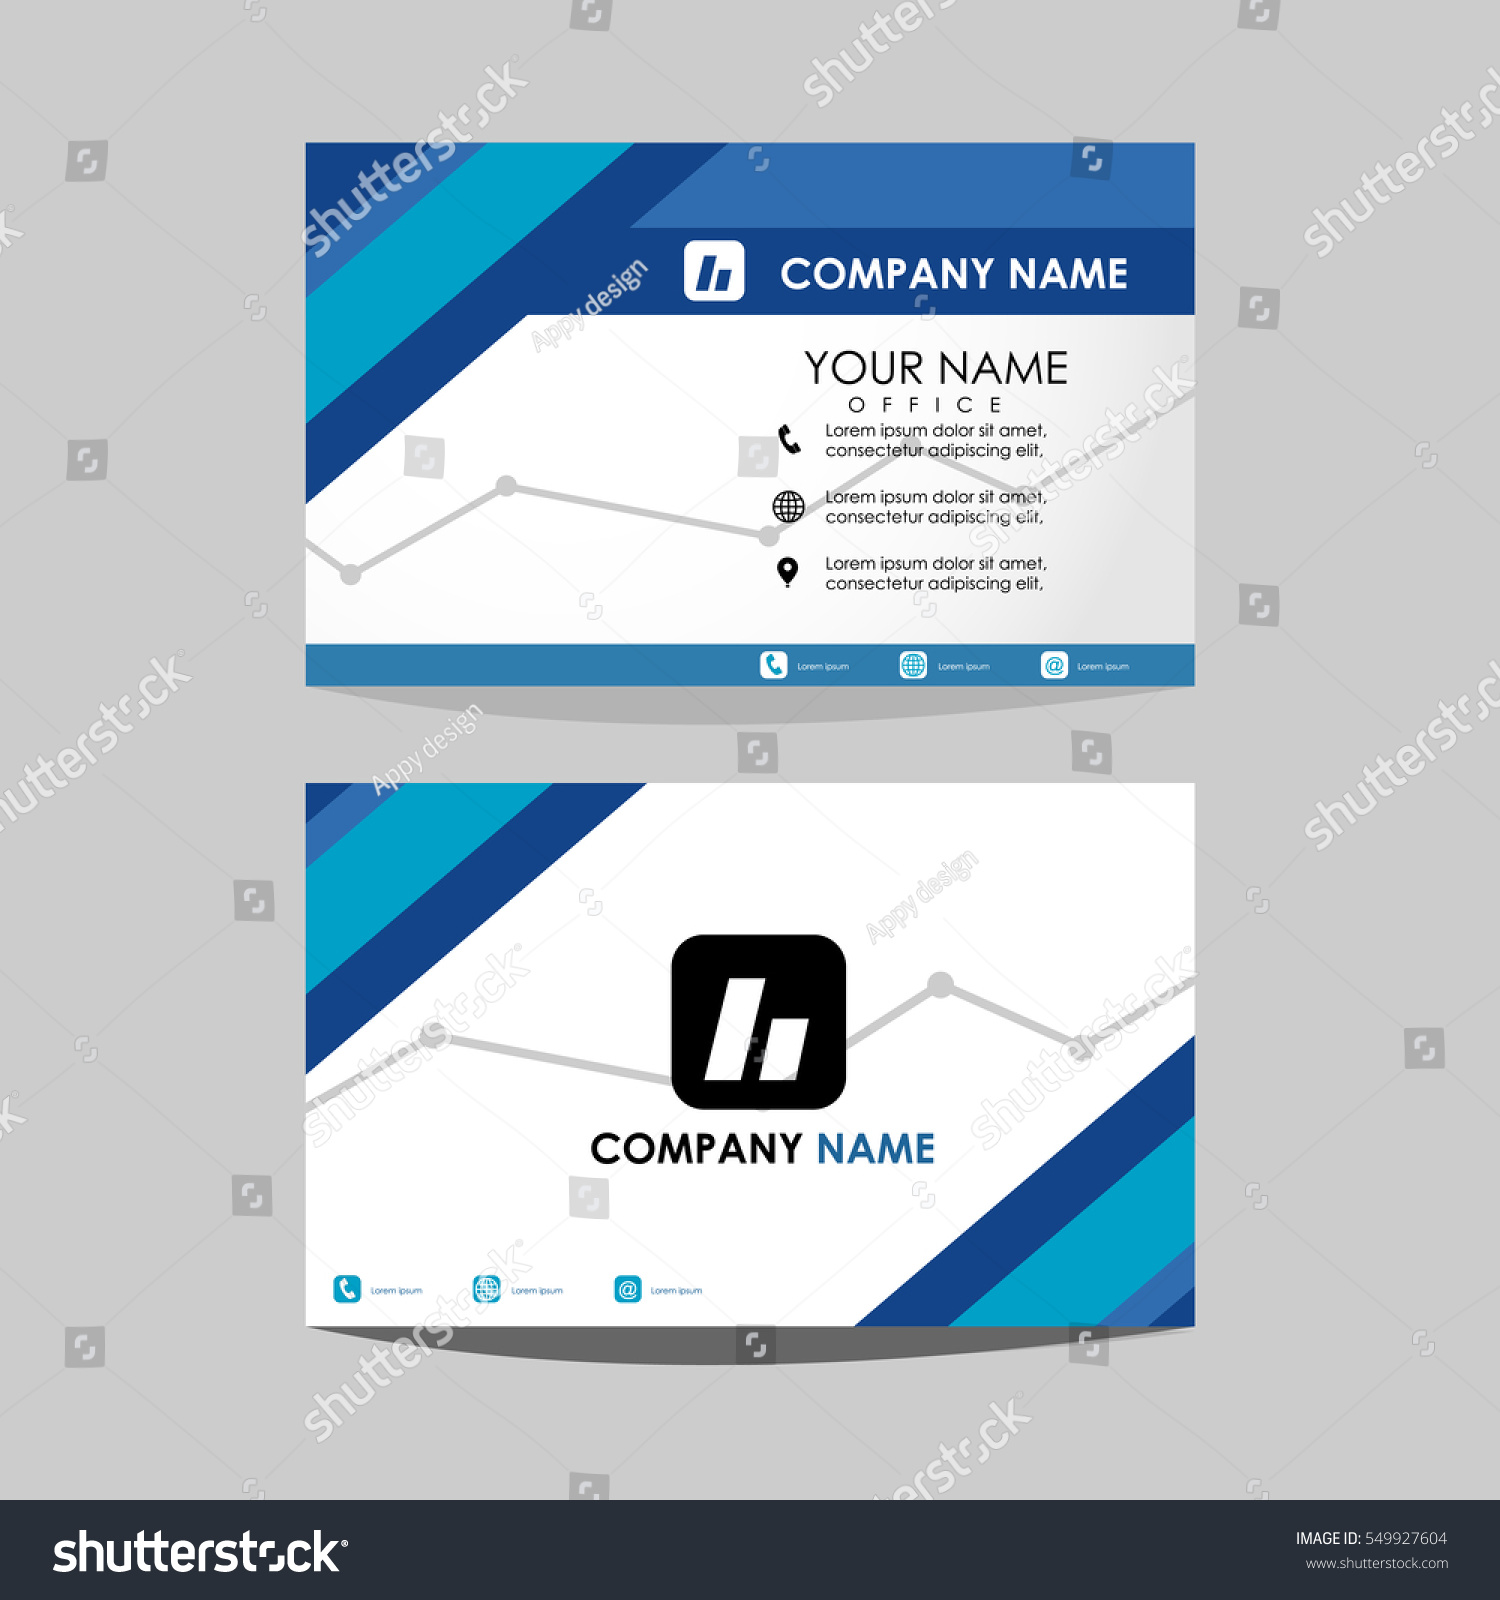 Layout Template Id Card Business Card Stock Vector 549927604 ...